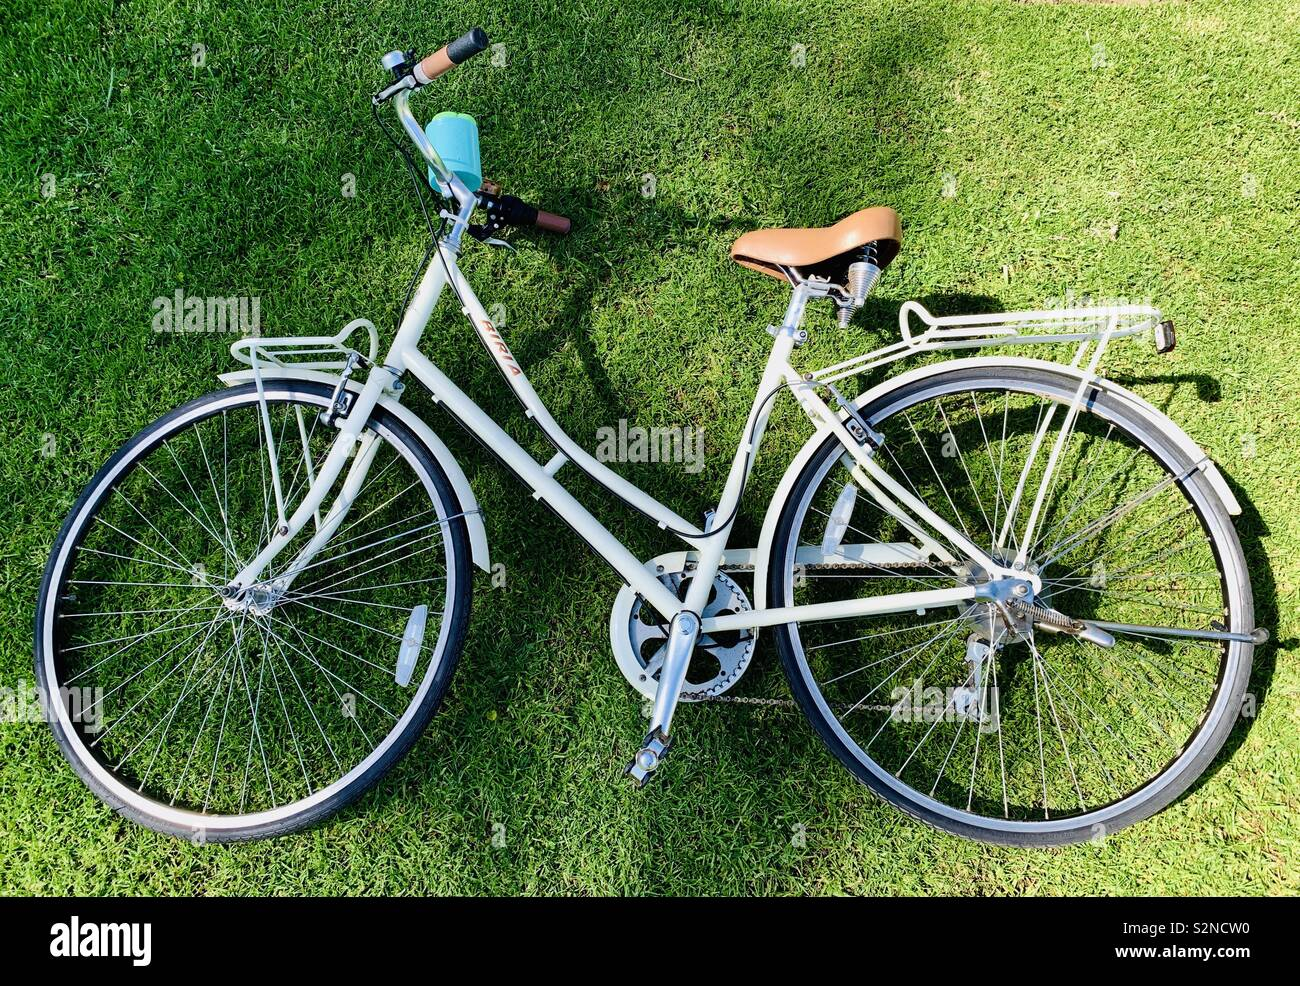 A bike laying in the grass. - Stock Image